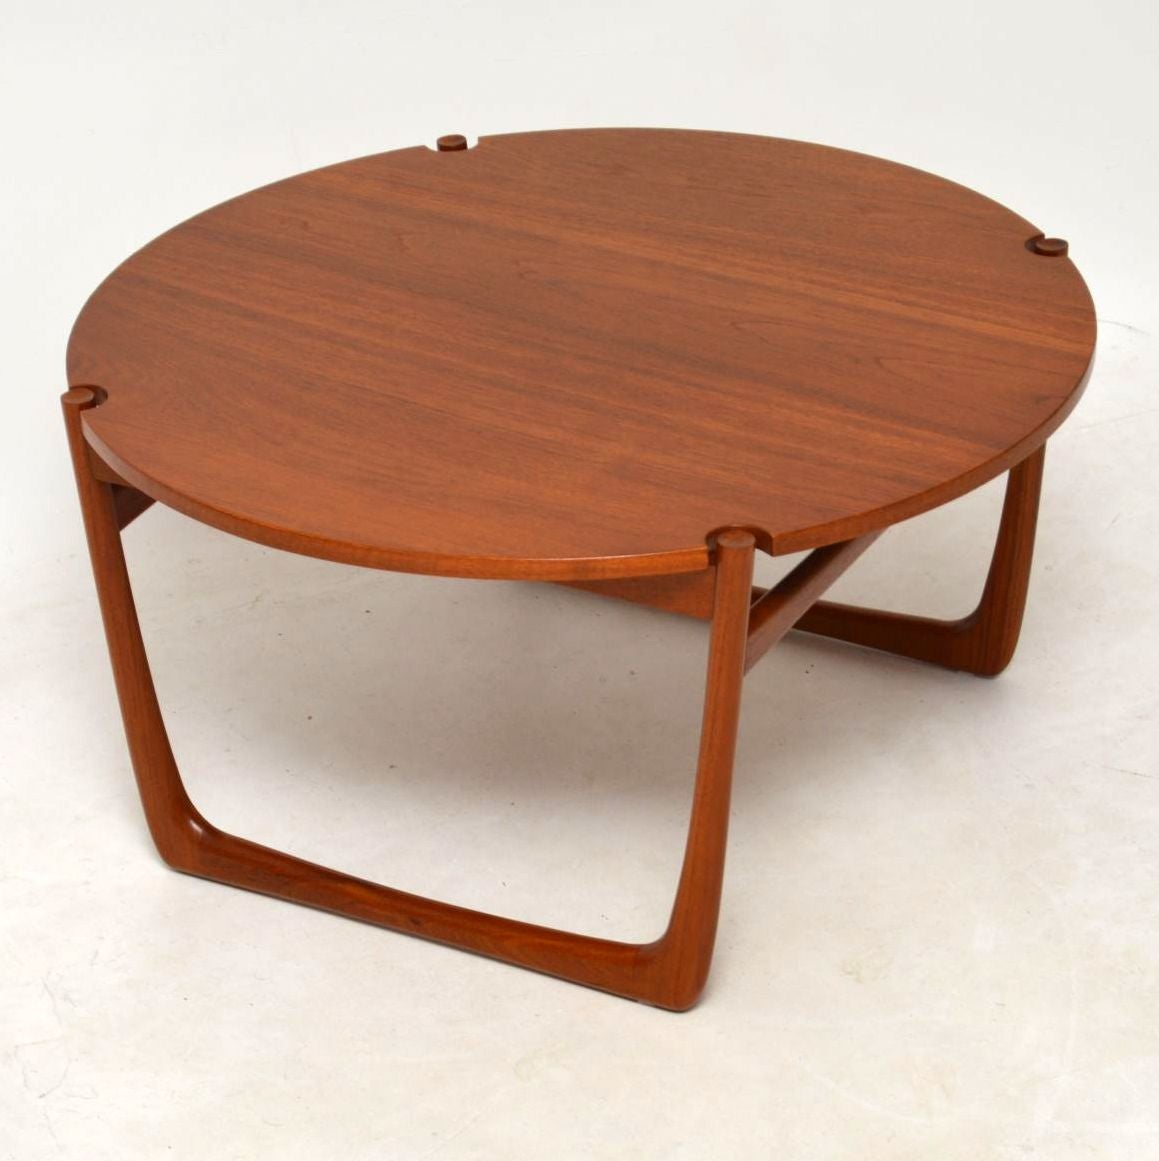 1960s Danish Teak Coffee Table By Peter Hvidt And Orla Mølgaard Nielsen For At 1stdibs